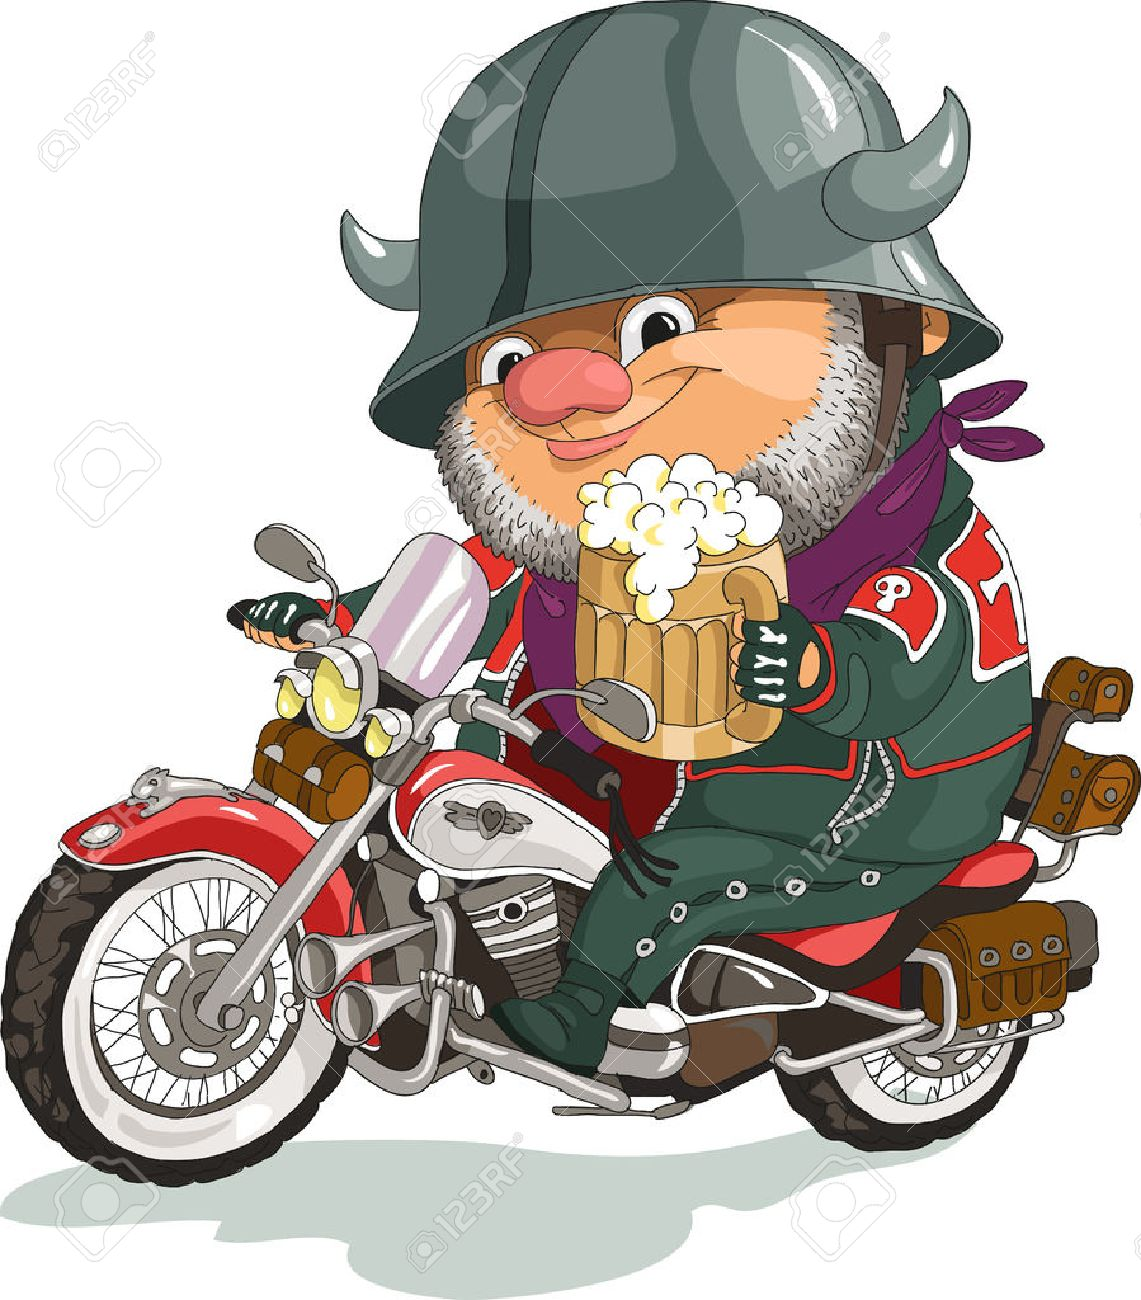 Funny cartoon. Vector illustration. Cool biker sitting on the motorcycle with a beer. Isolated objects. Standard-Bild - 46515302